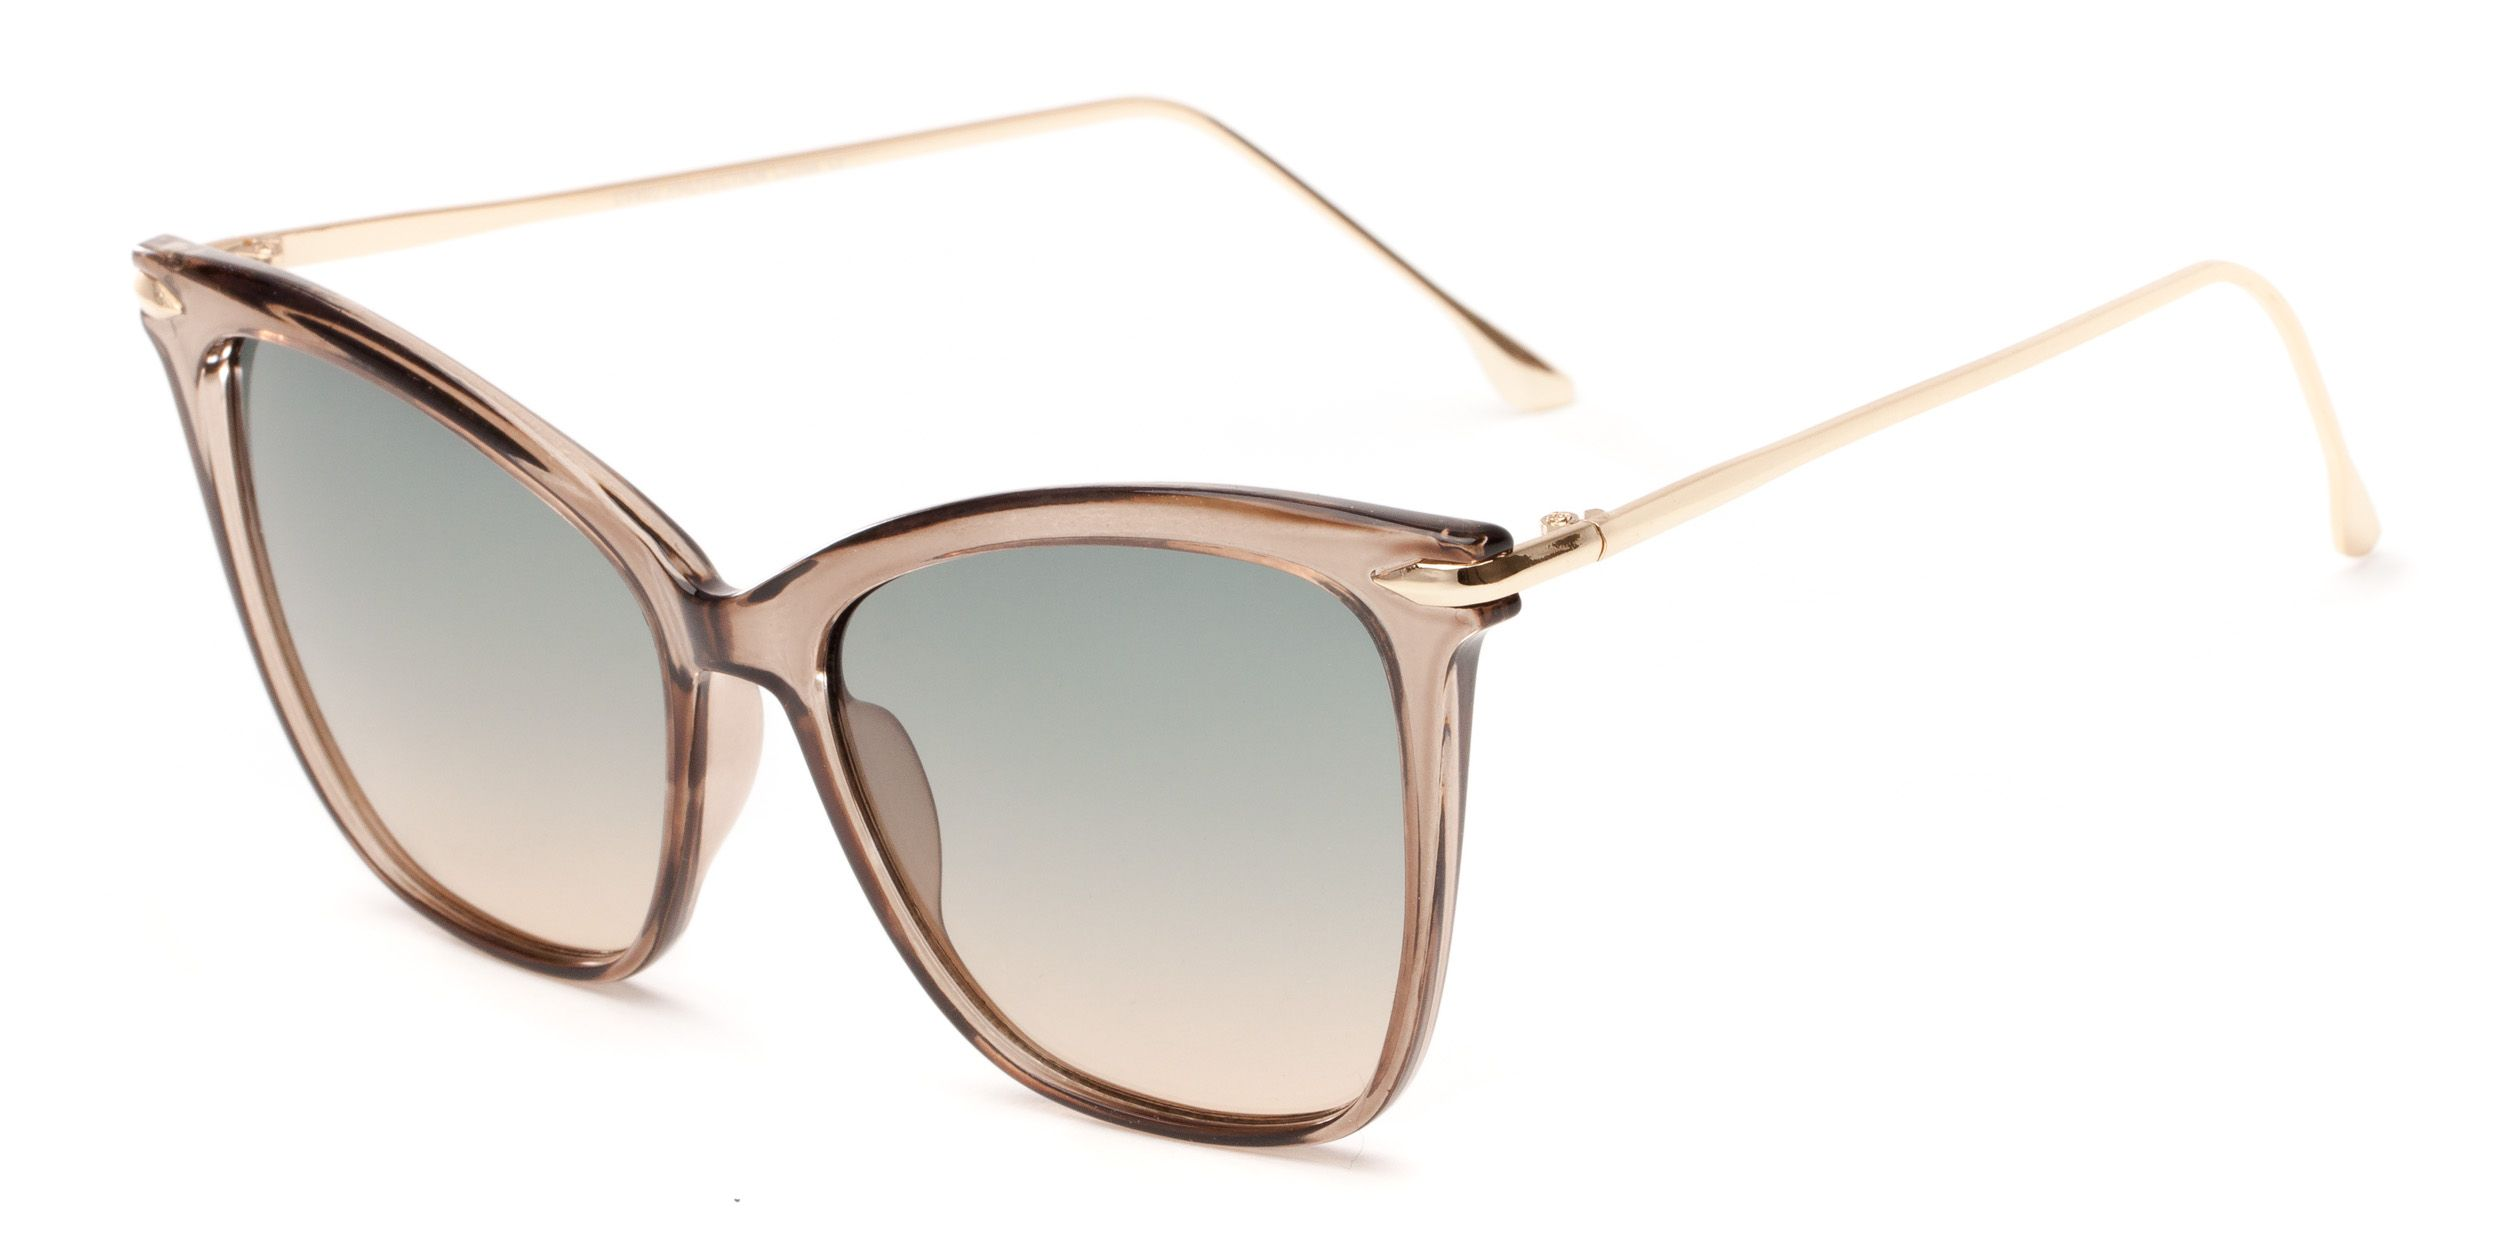 c6d04066b4f These oversized cat eye sunglasses have a combo frame with all metal  temples and pastel gradient UV lenses. So fetch.